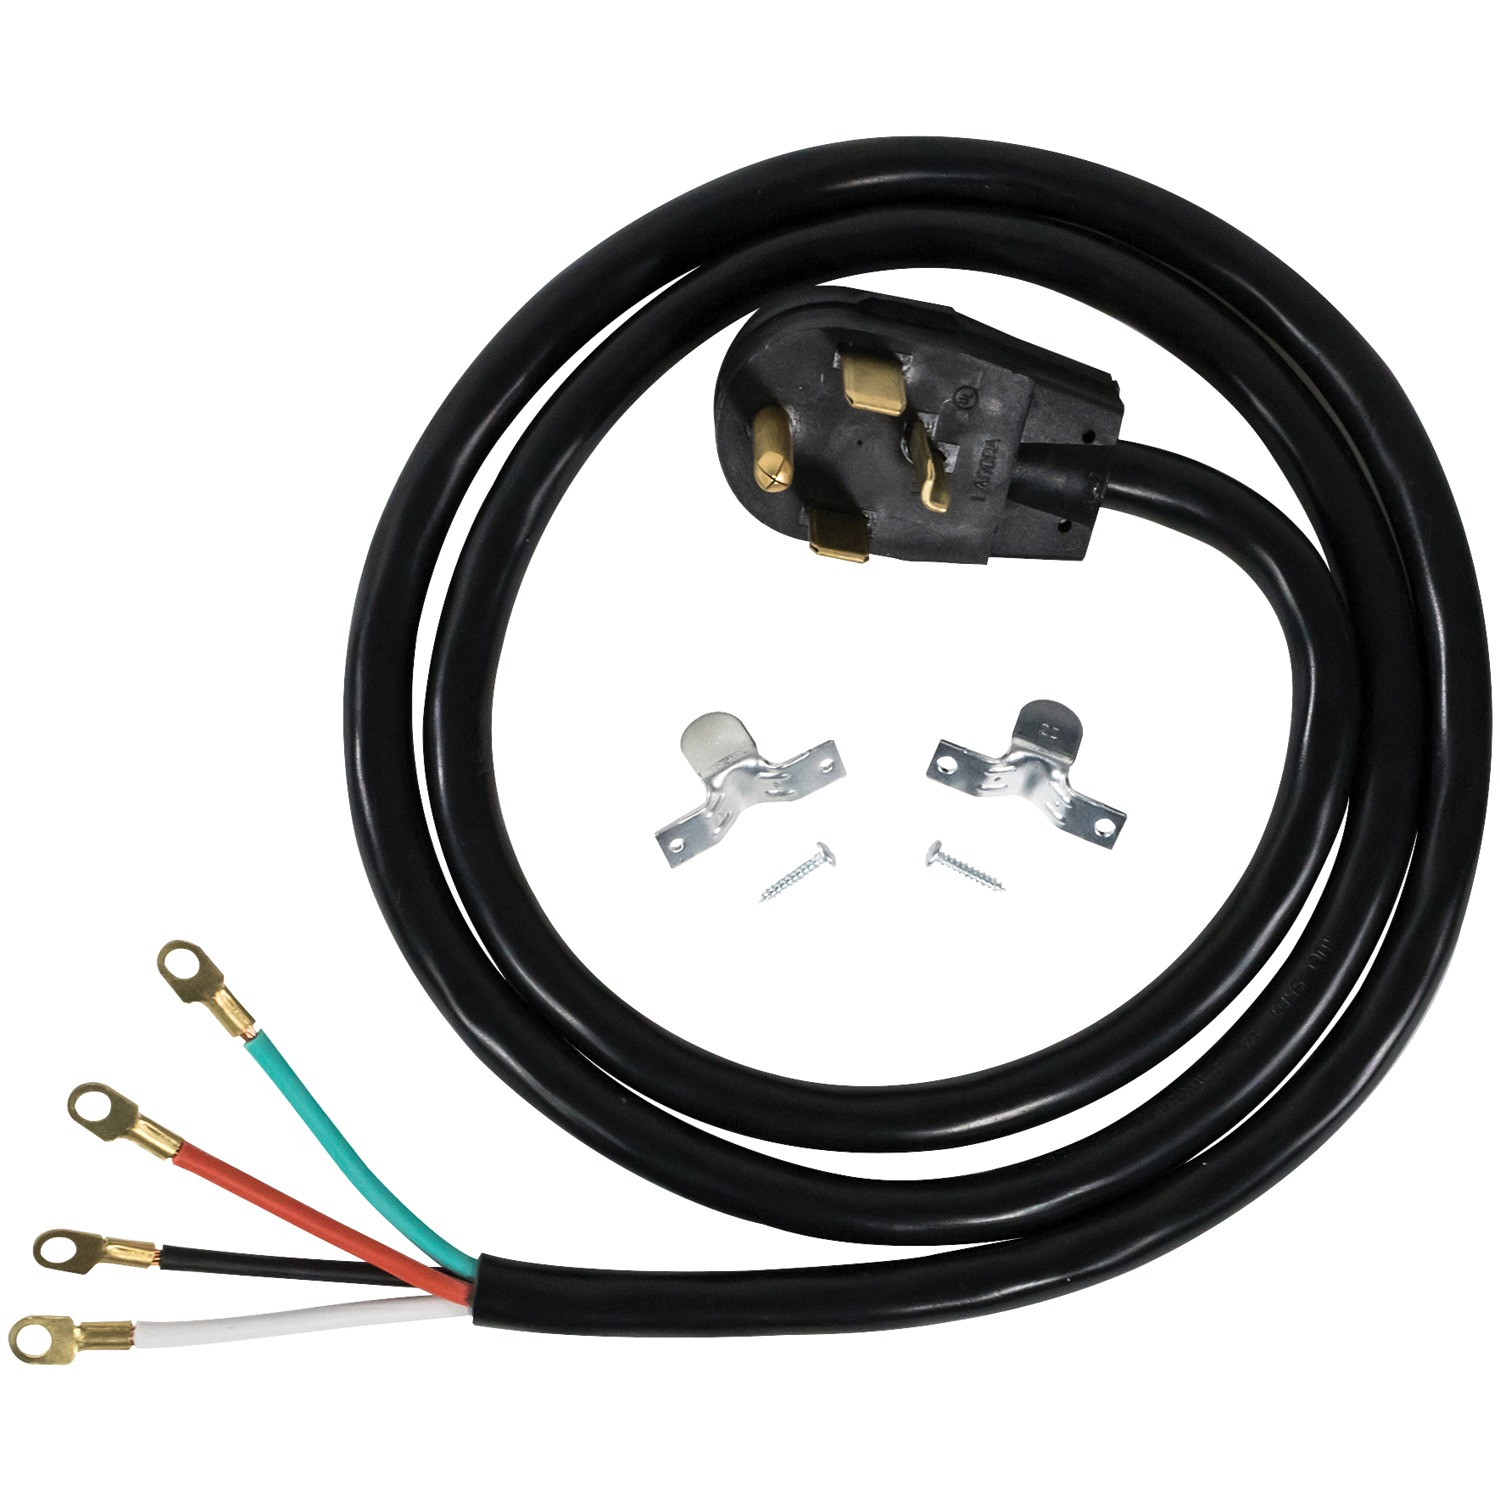 nema 14 30r wiring diagram sky q dryer cords certified appliance accessories 90 2024 4 wire closed eyelet 30 amp